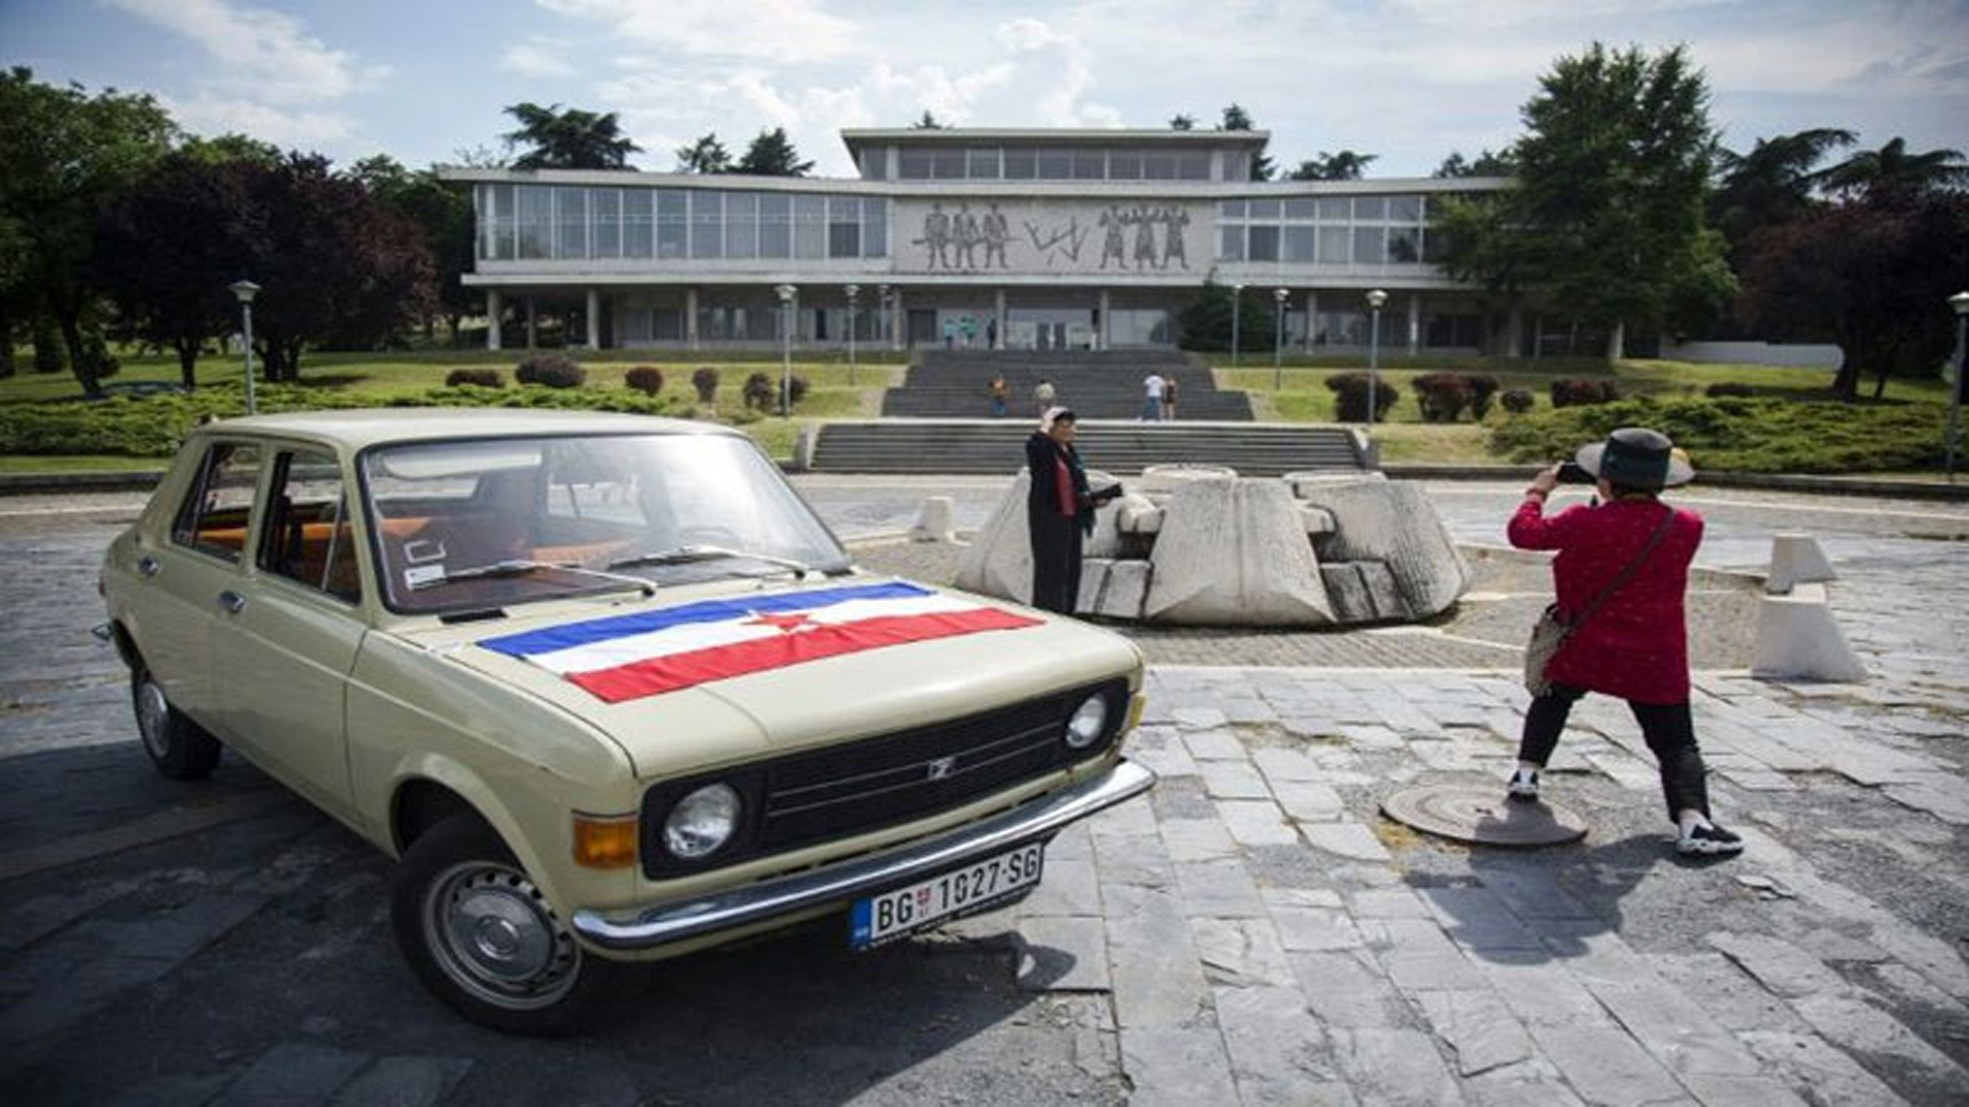 The last Yugo cars were produced a decade ago, but they are still a hit among tourists.